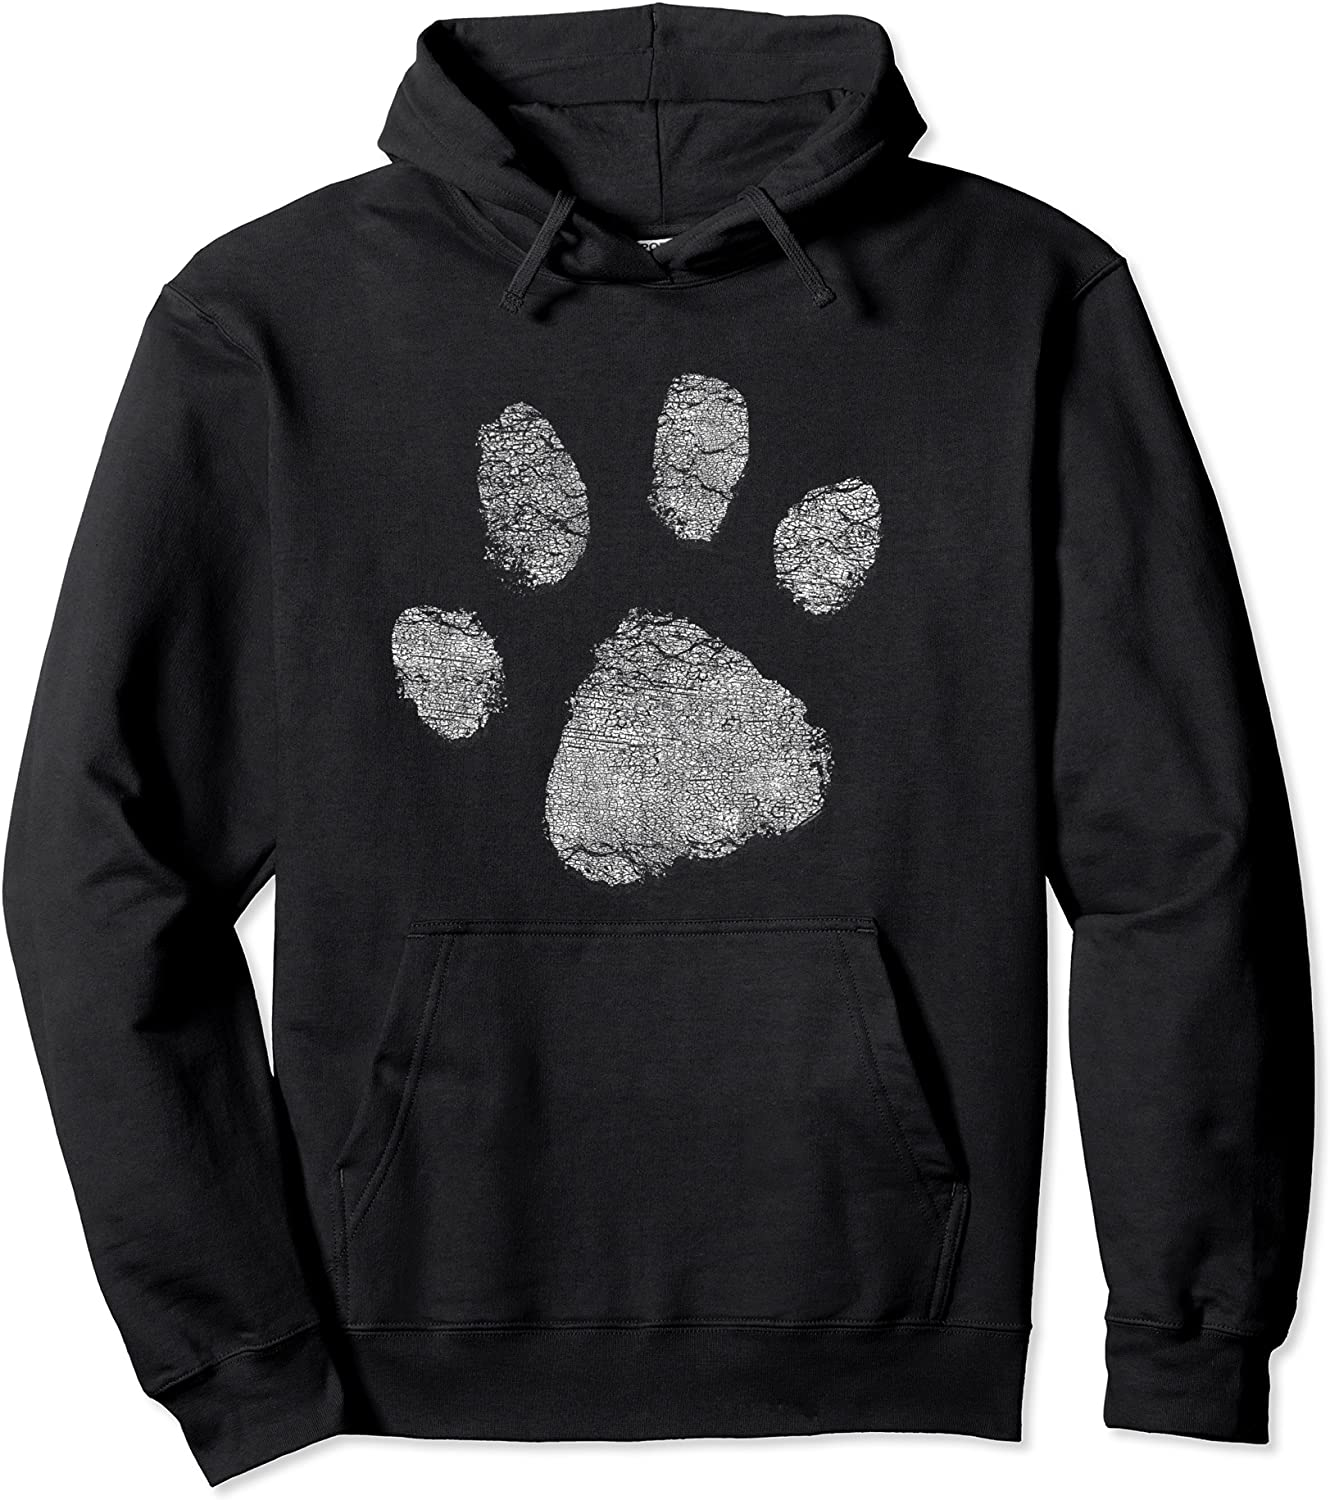 Dog Lovers Paw Print Factory outlet Mom Pullover 70% OFF Outlet Hoodie Dad